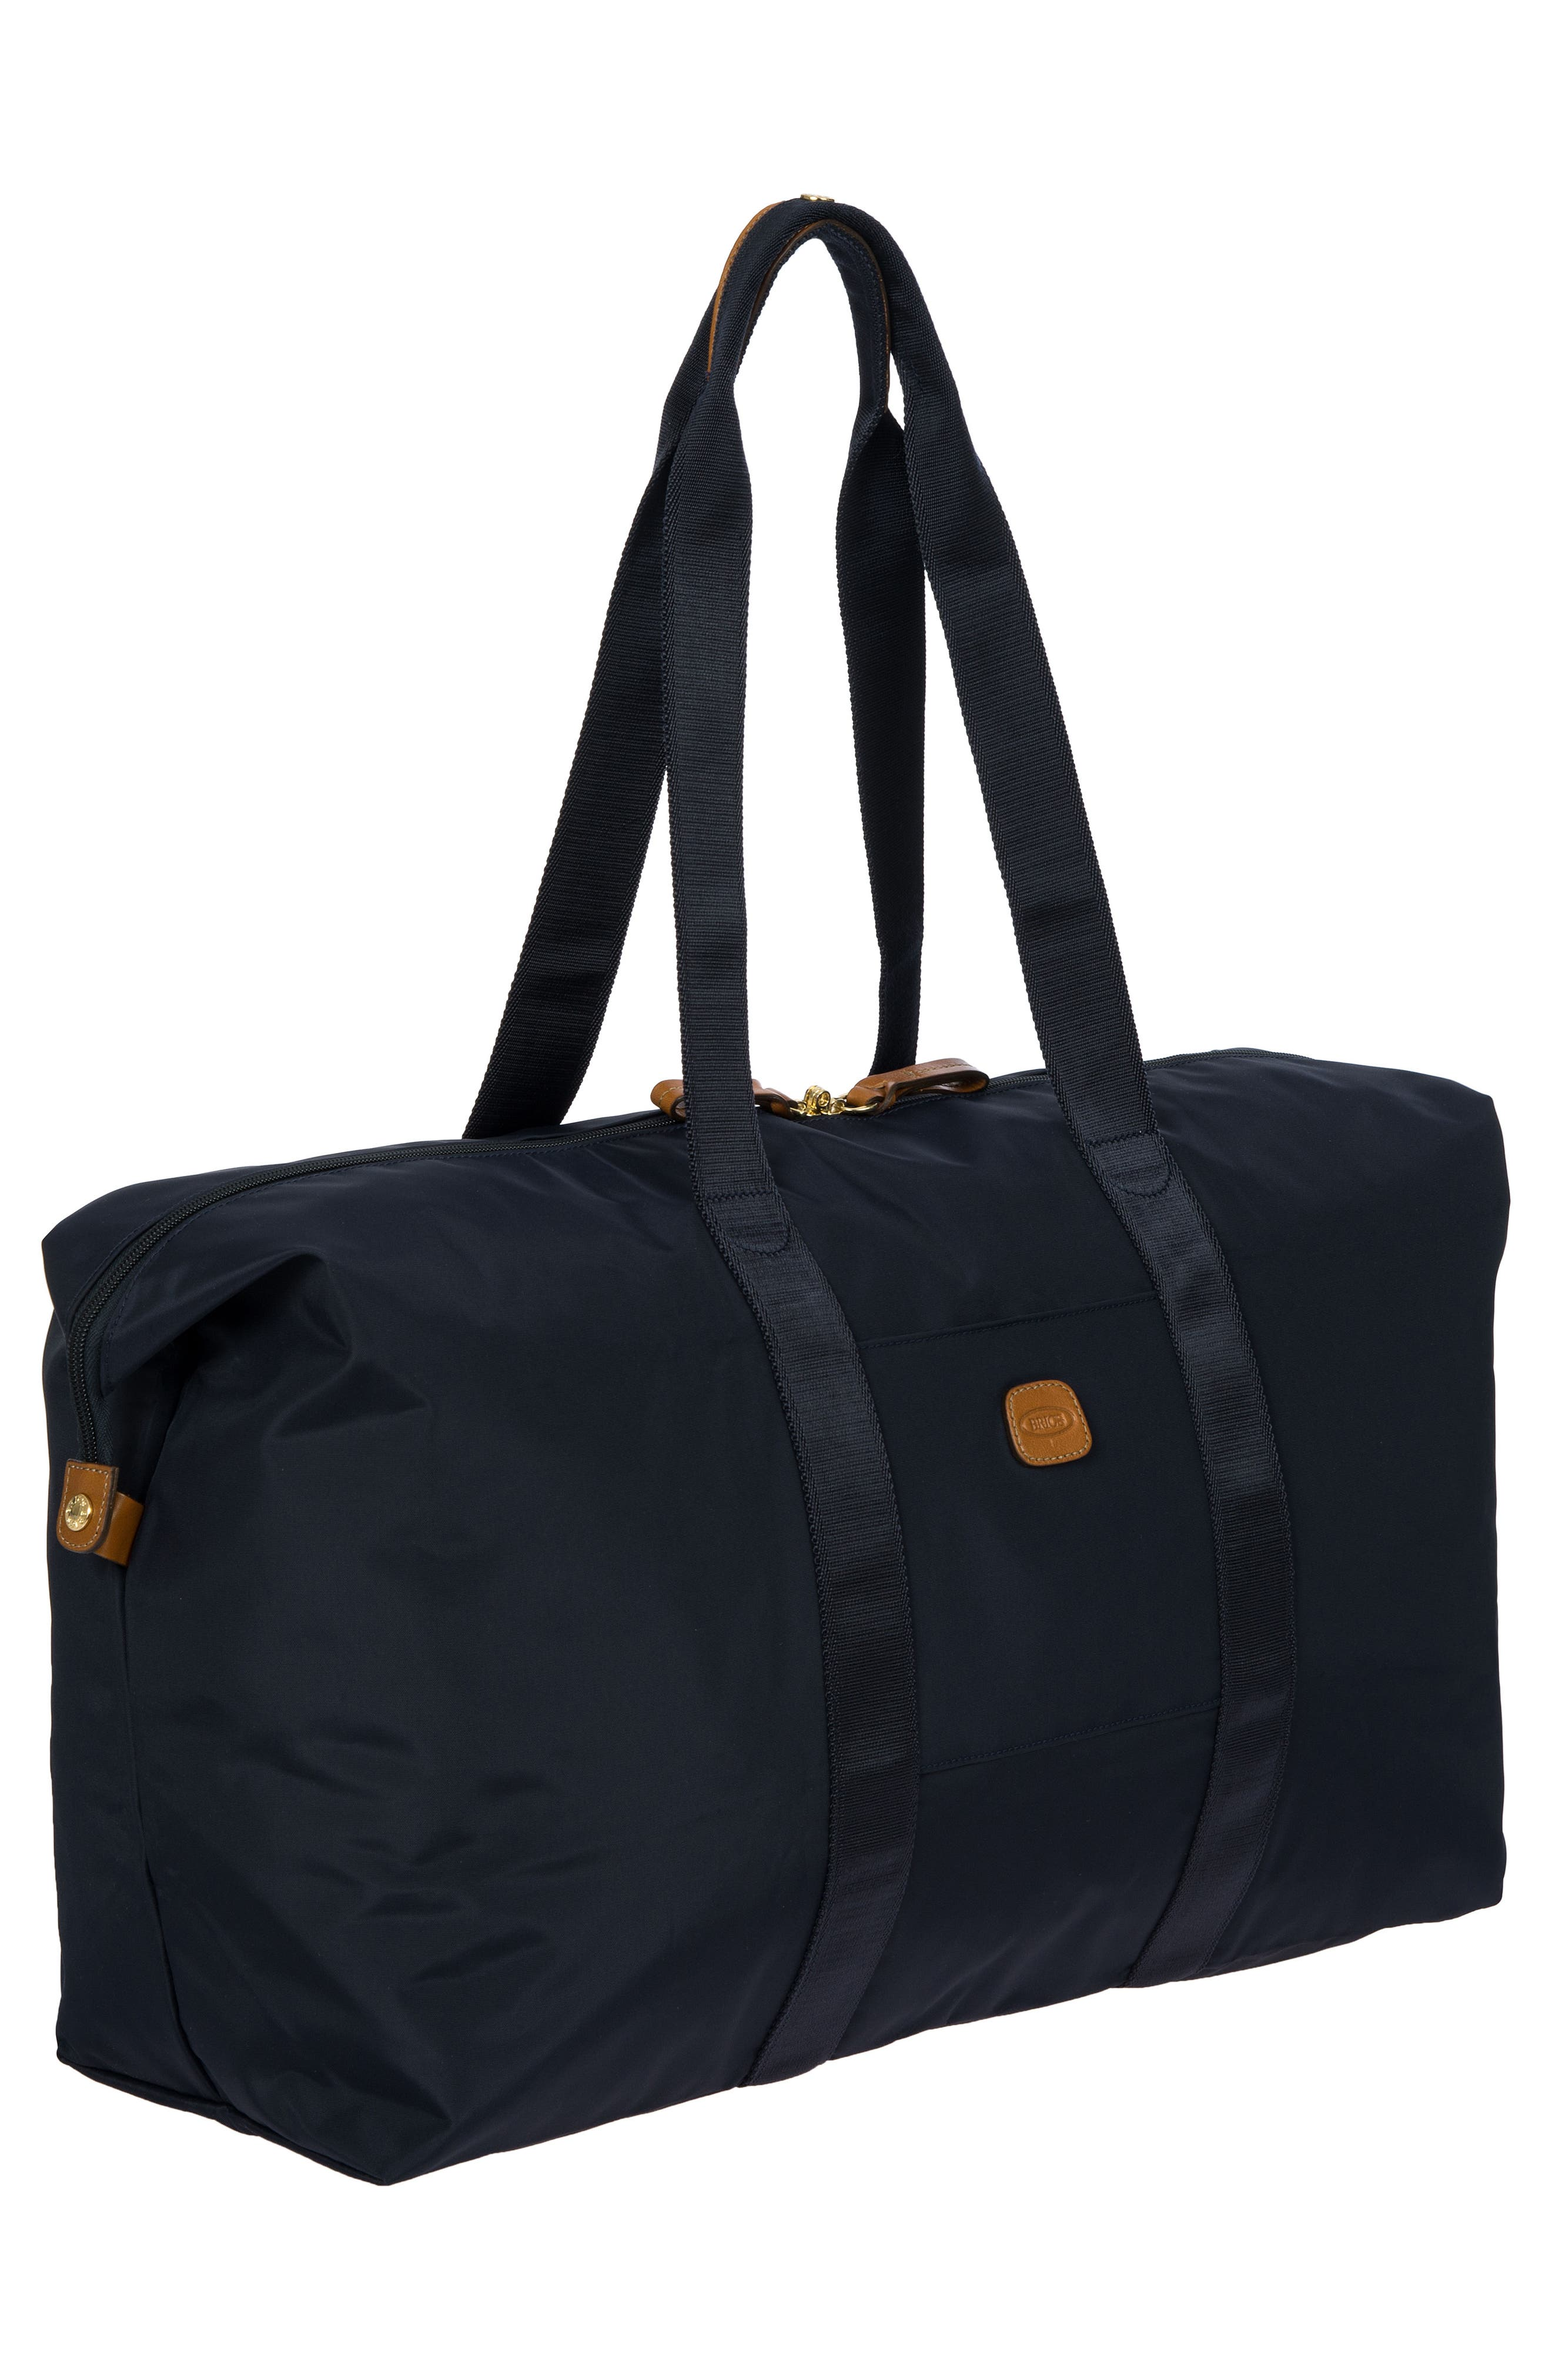 X-Bag 22-Inch Folding Duffel Bag,                             Alternate thumbnail 4, color,                             Navy